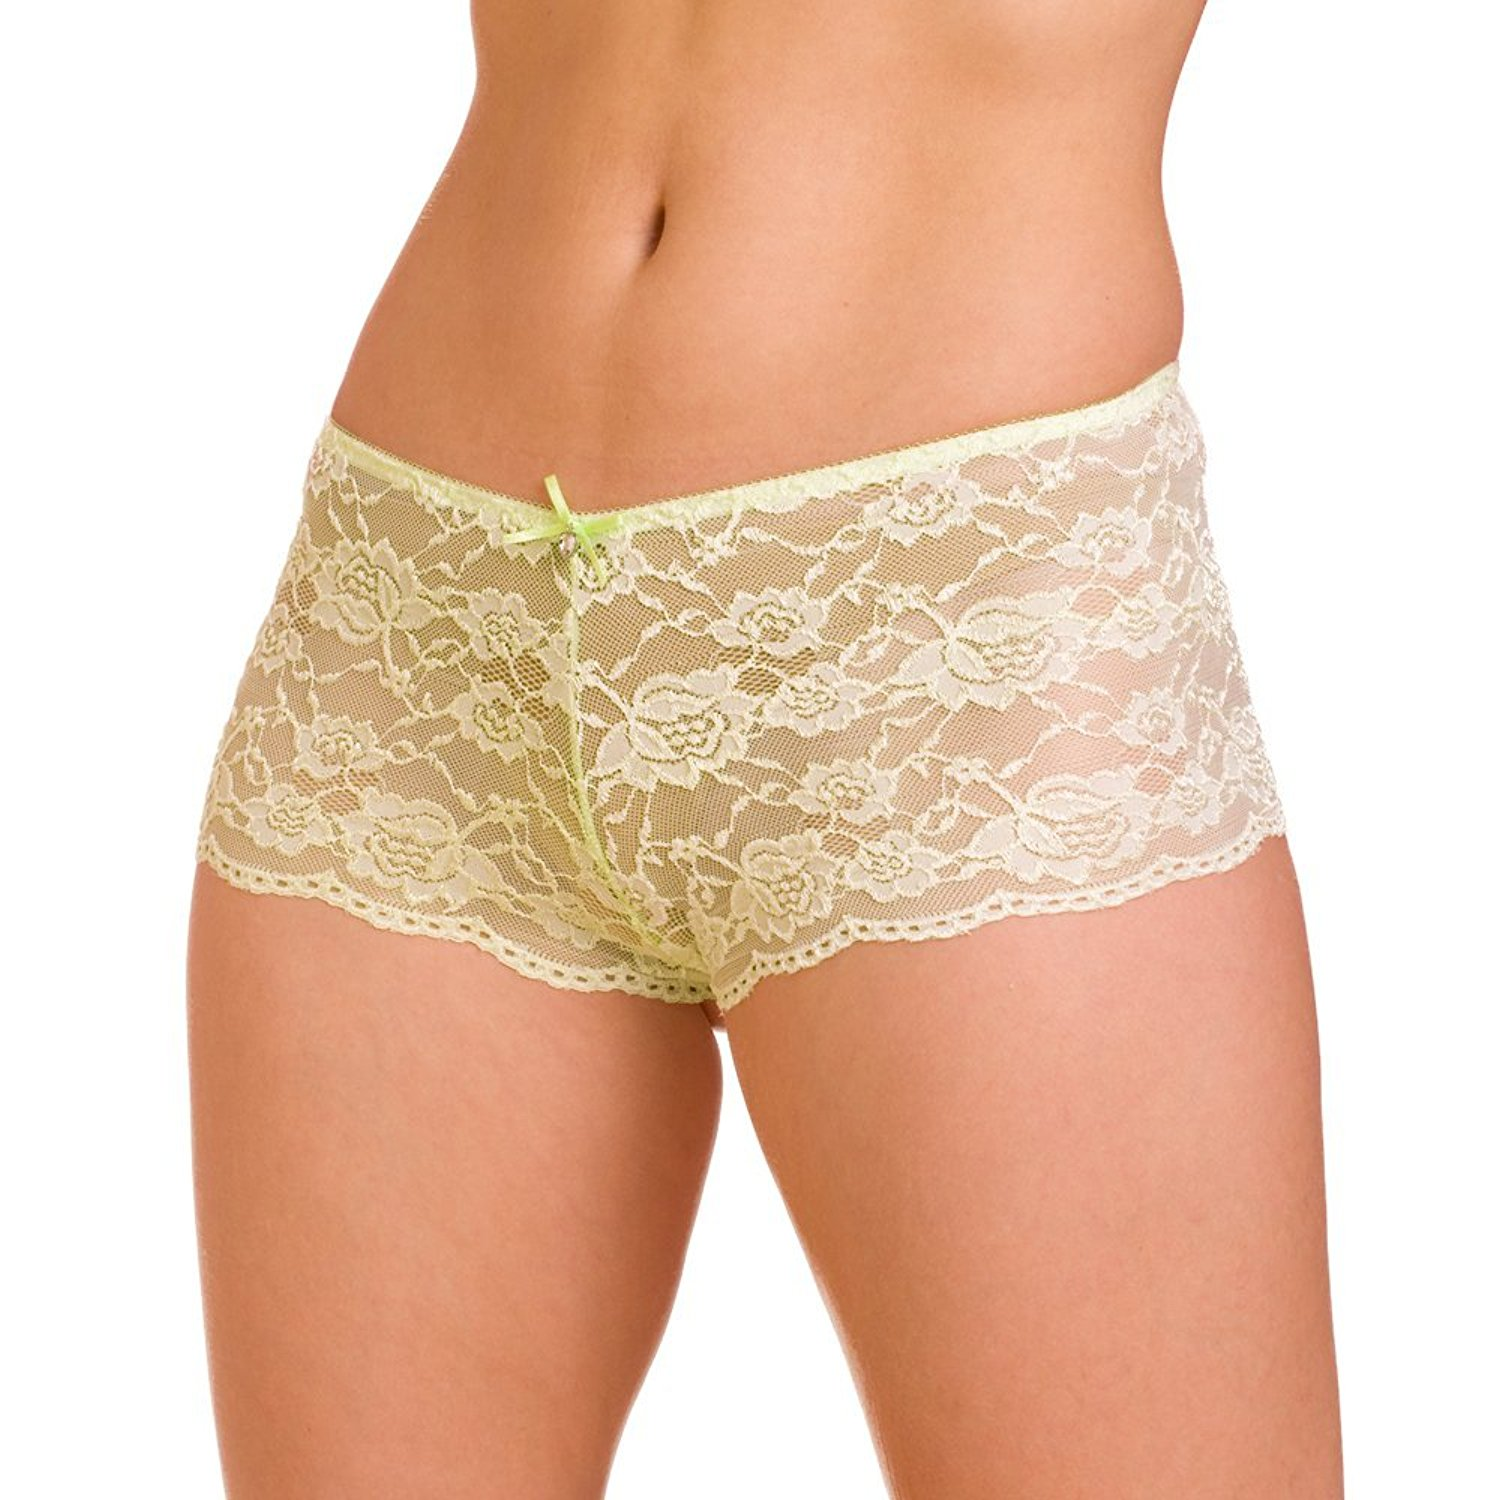 Camille Womens Ladies Underwear Lime Green Lace Bow French Thong Briefs  Knickers 4-18 7904158c3